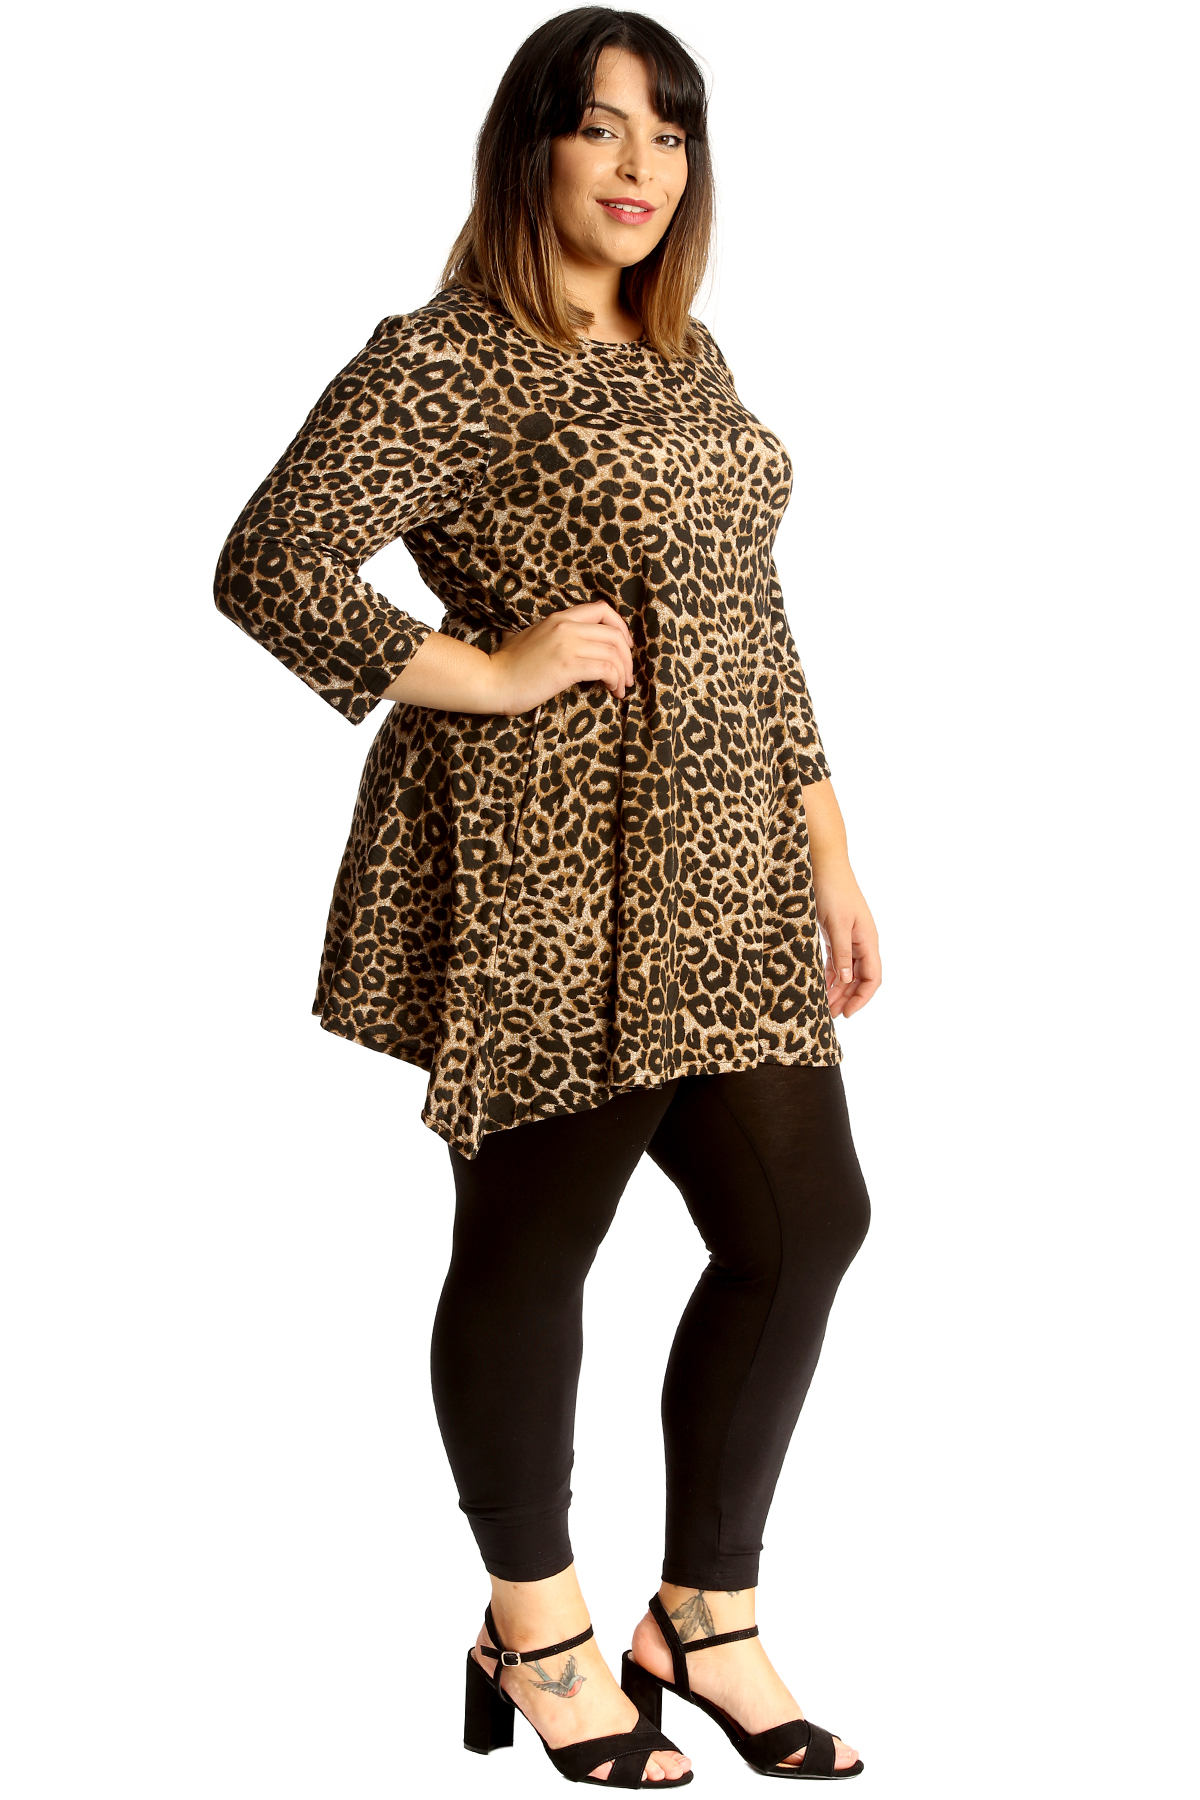 e4b6884bf0375 New Womens Plus Size Top Ladies Leopard Animal Print Tunic Swing ...